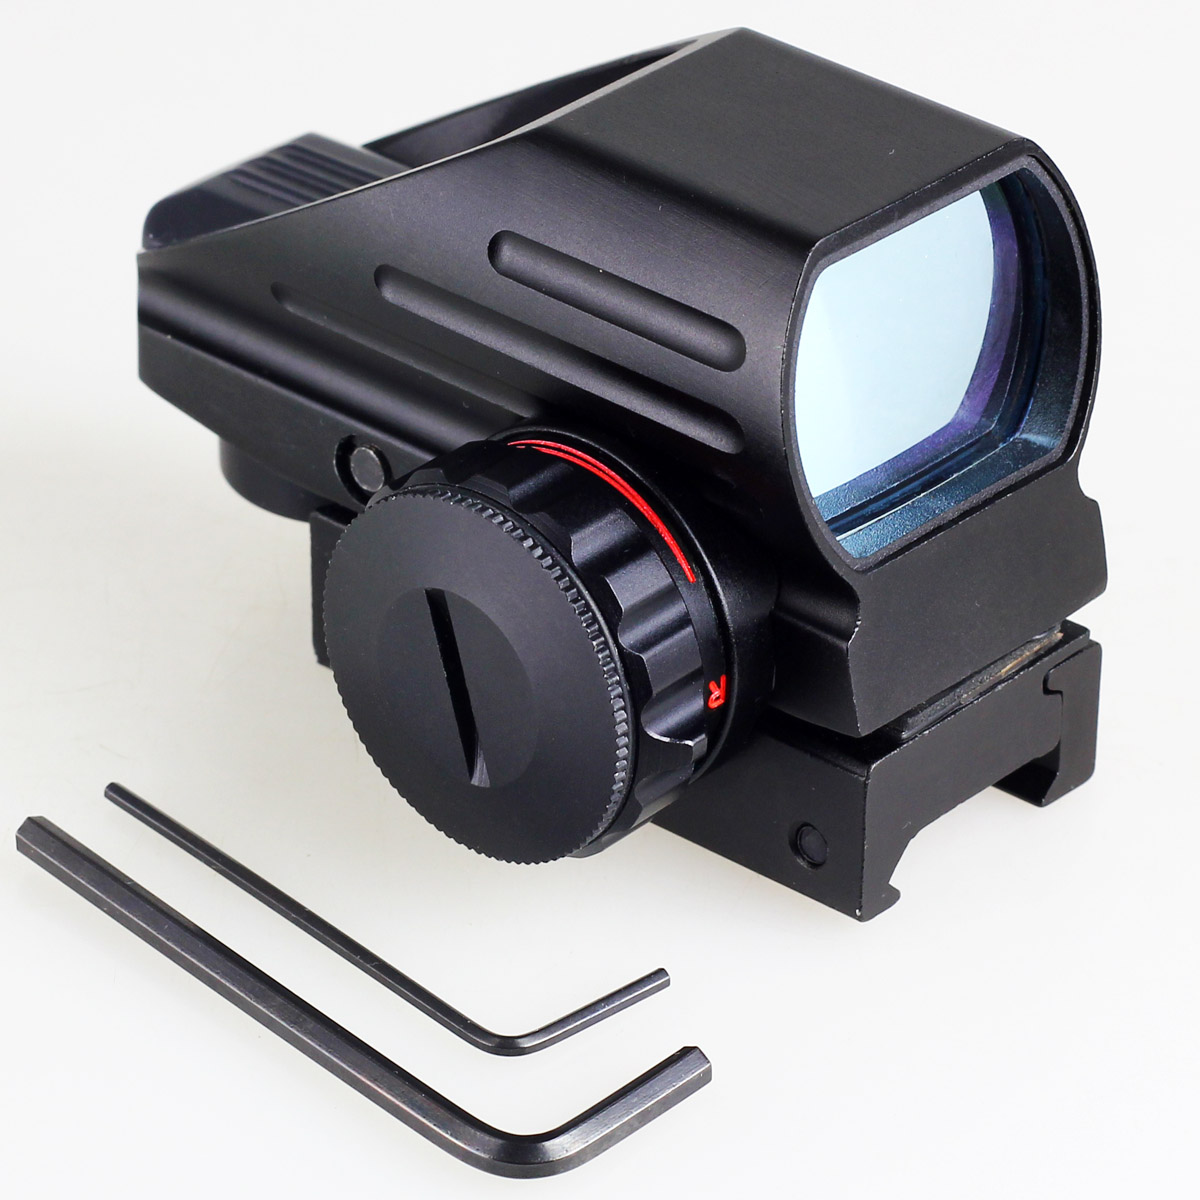 VERY100 Holographic Projected Reflex Laser Red / Green 4 Reticle Dot Sight Scope for Hunting Hunter Shotgun<br><br>Aliexpress